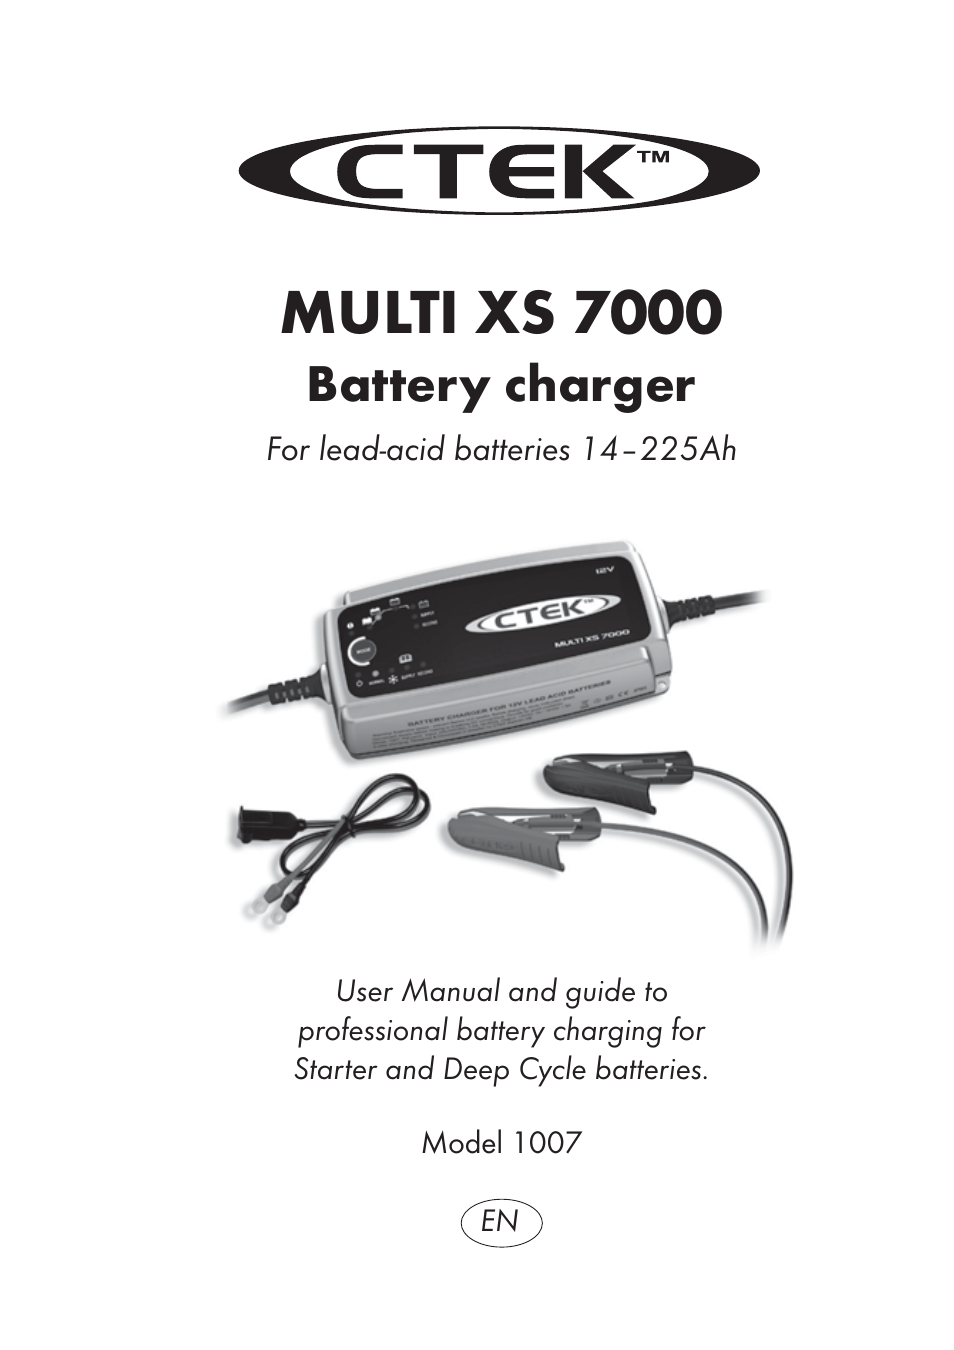 Ctek power usa tablet accessory multi xs 7000 battery charger 1007.